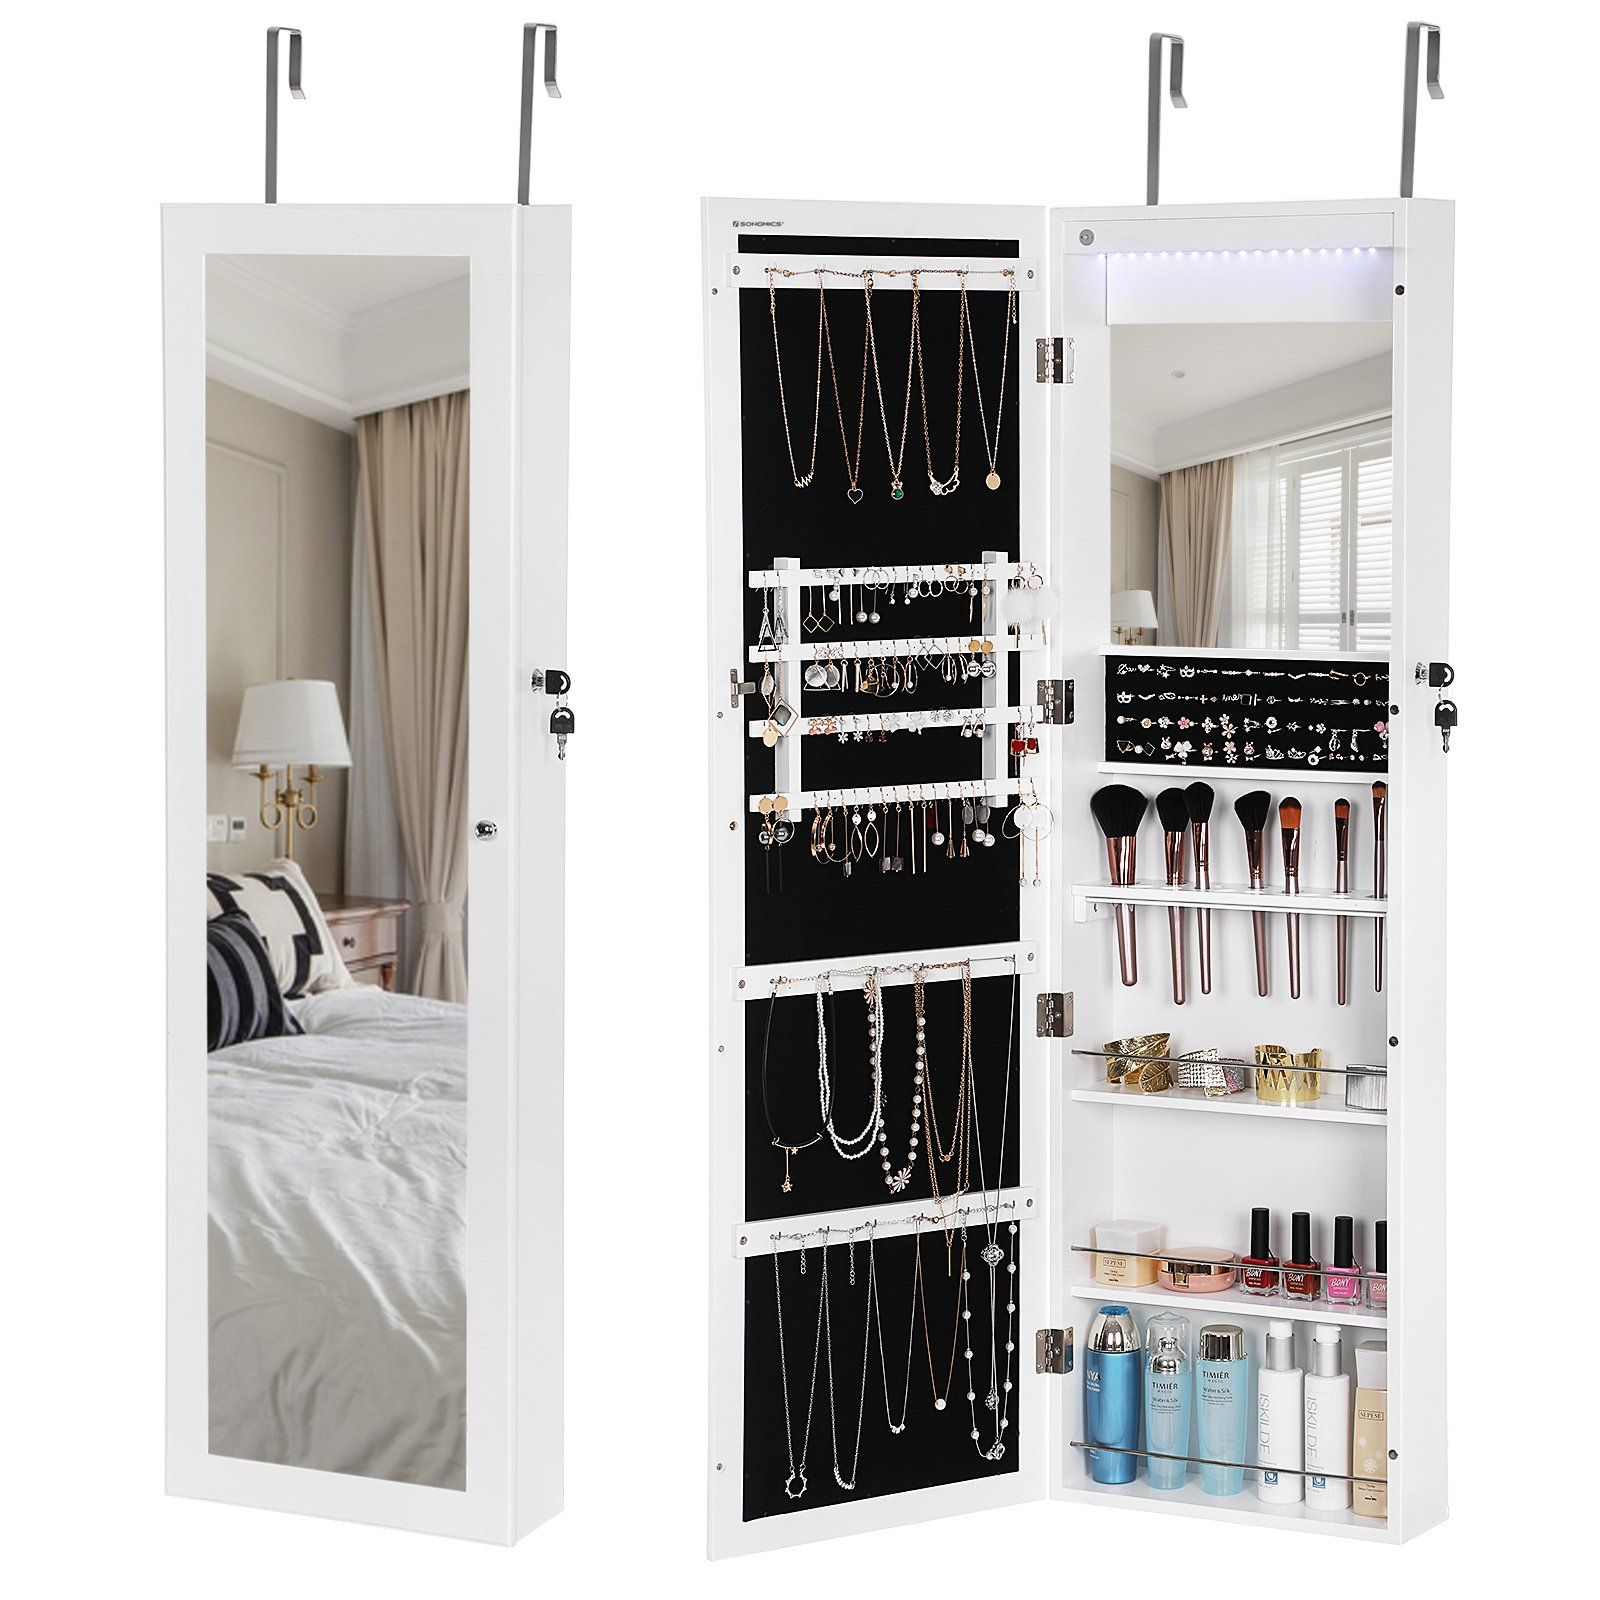 SONGMICS 18 LEDs Jewelry Cabinet Lockable Mirrored Wall Door Mounted